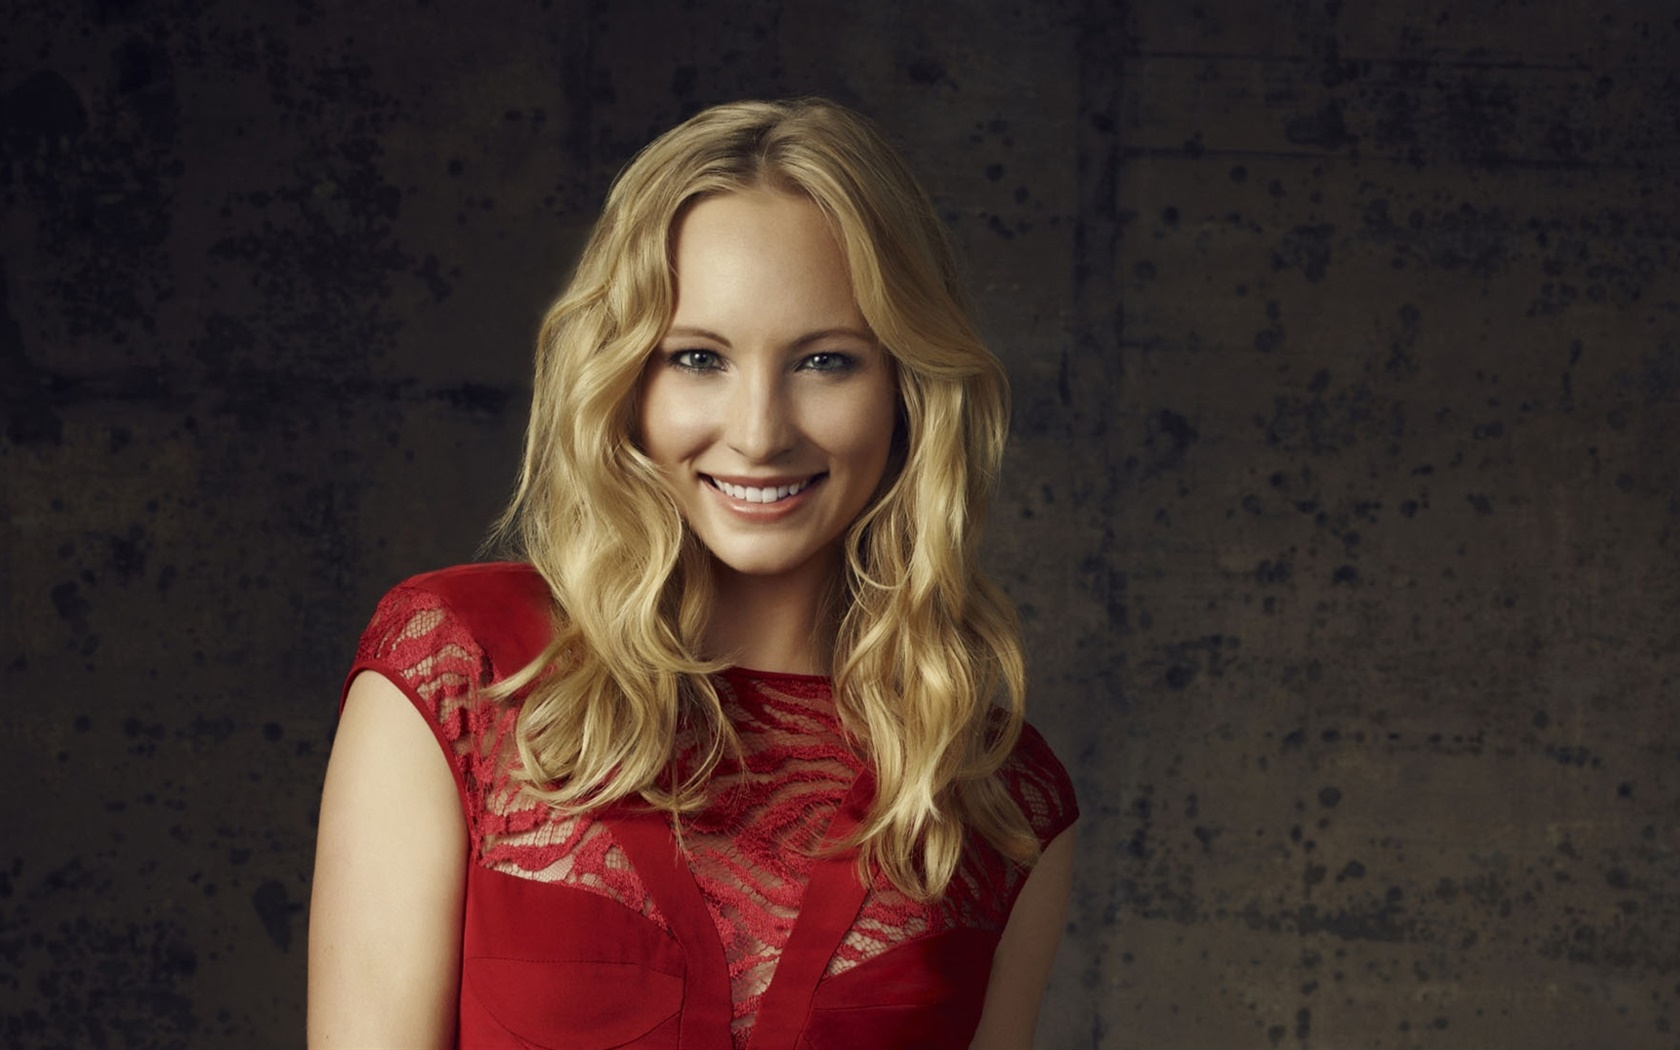 pictures gallery candice - photo #16